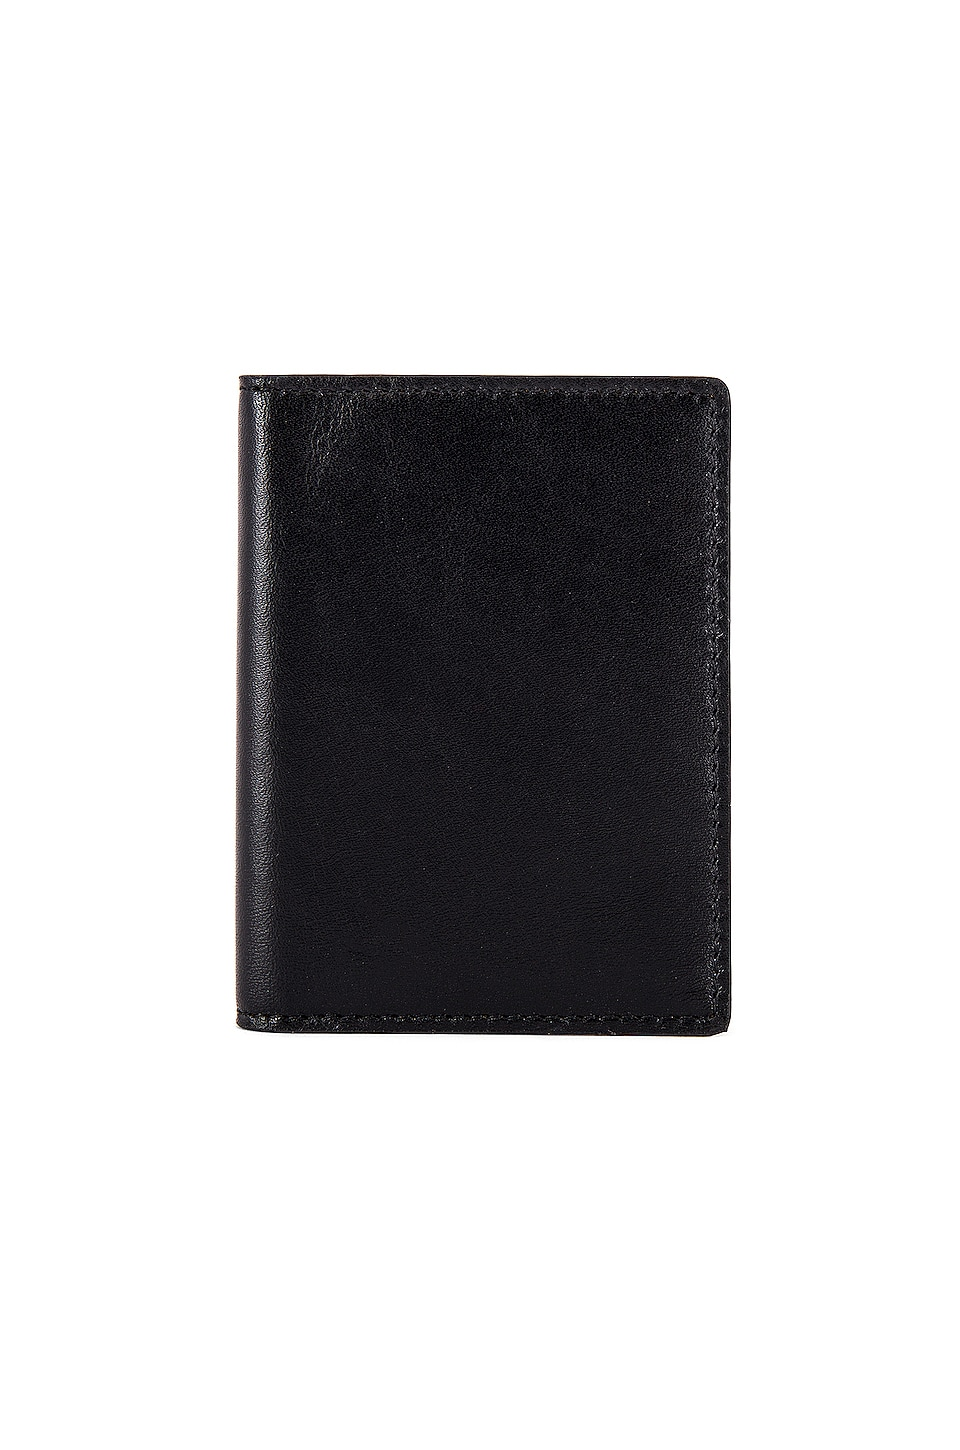 Common Projects CARTERA CARDHOLDER